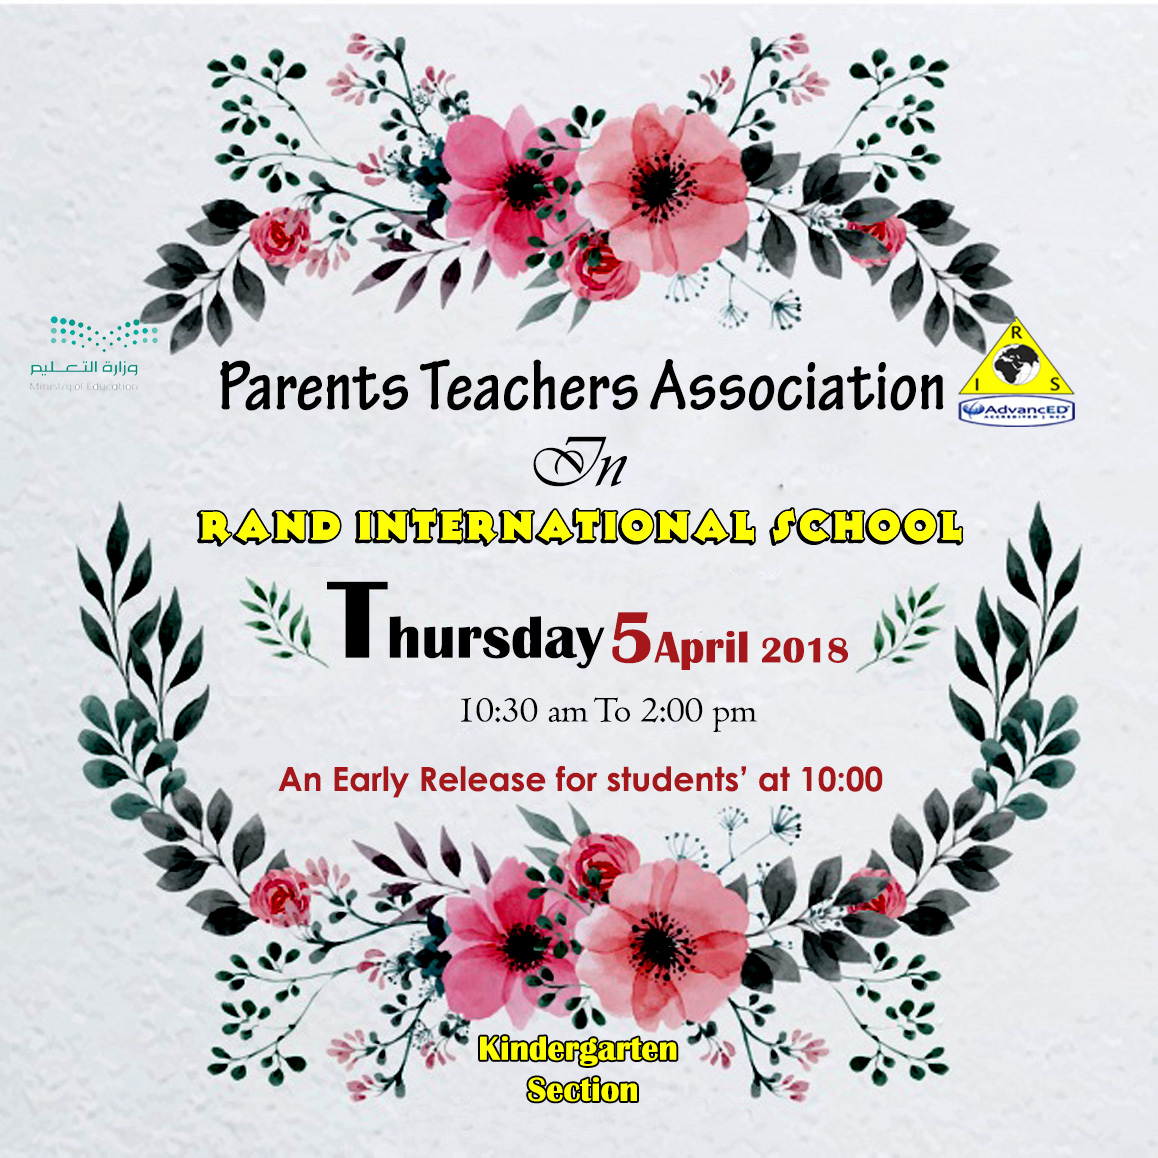 KG - Parents Teachers Association